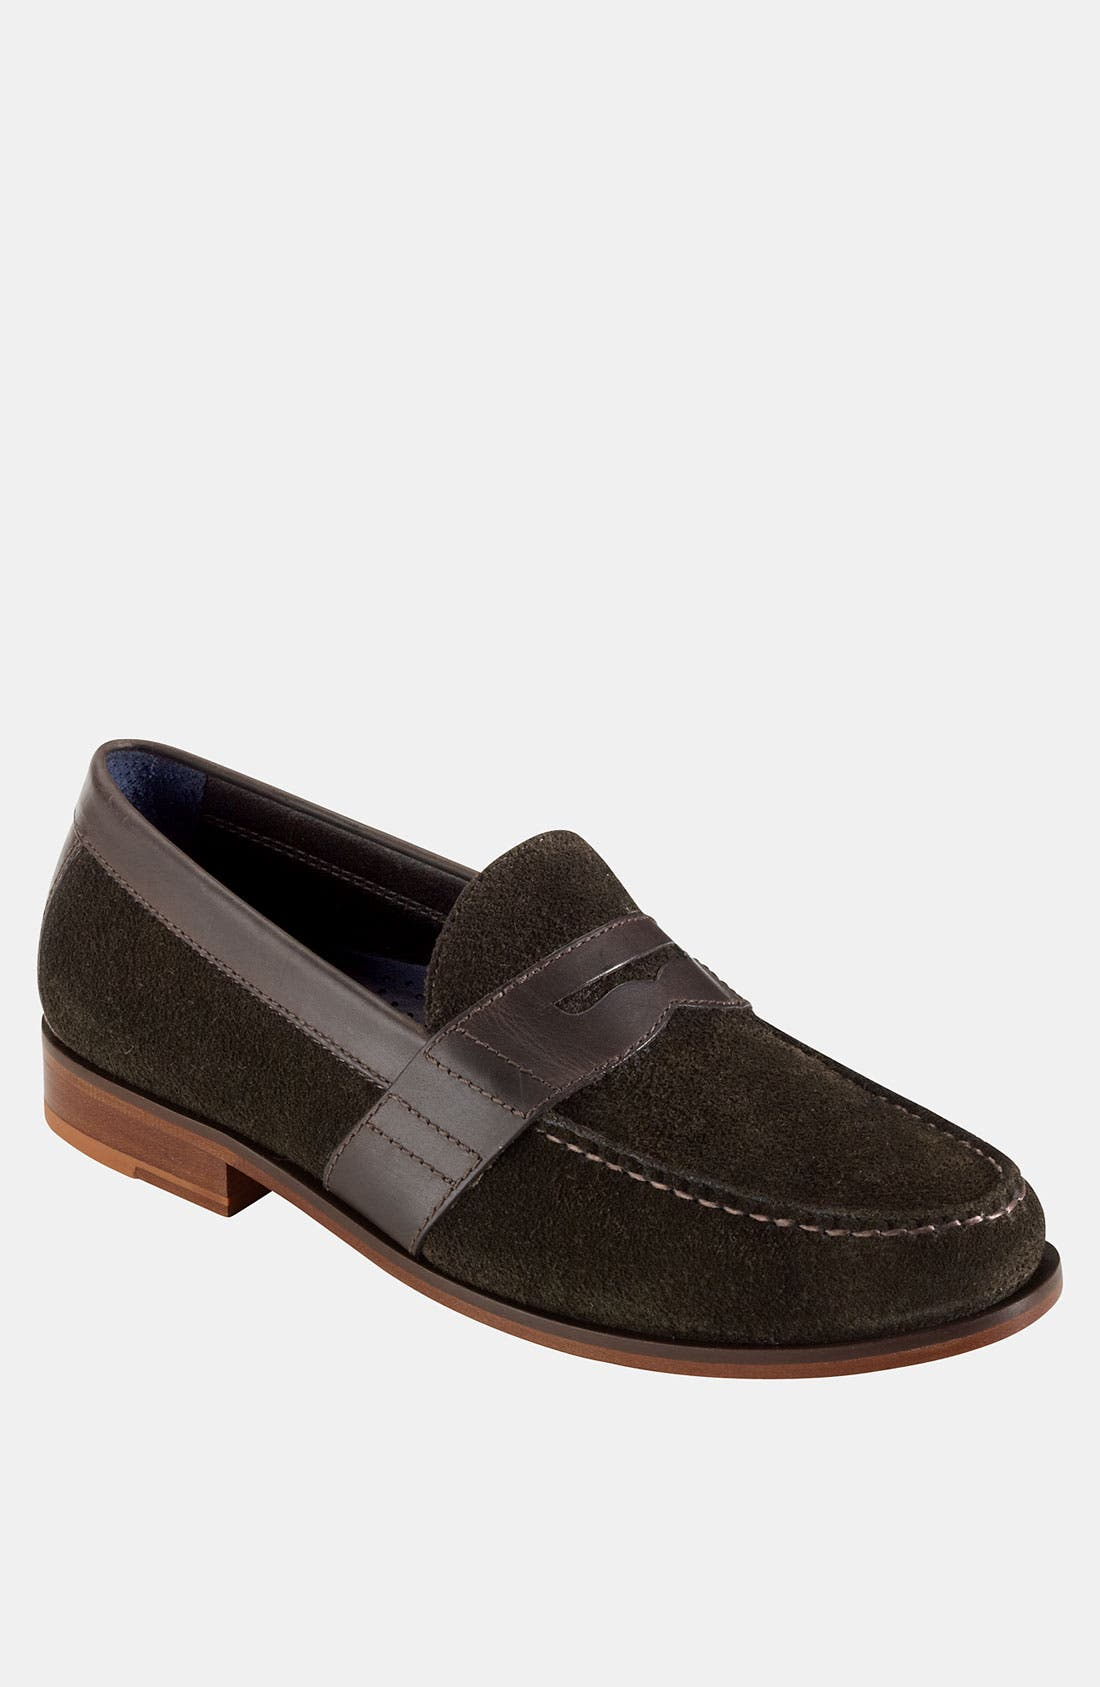 Main Image - Cole Haan 'Air Monroe' Penny Loafer